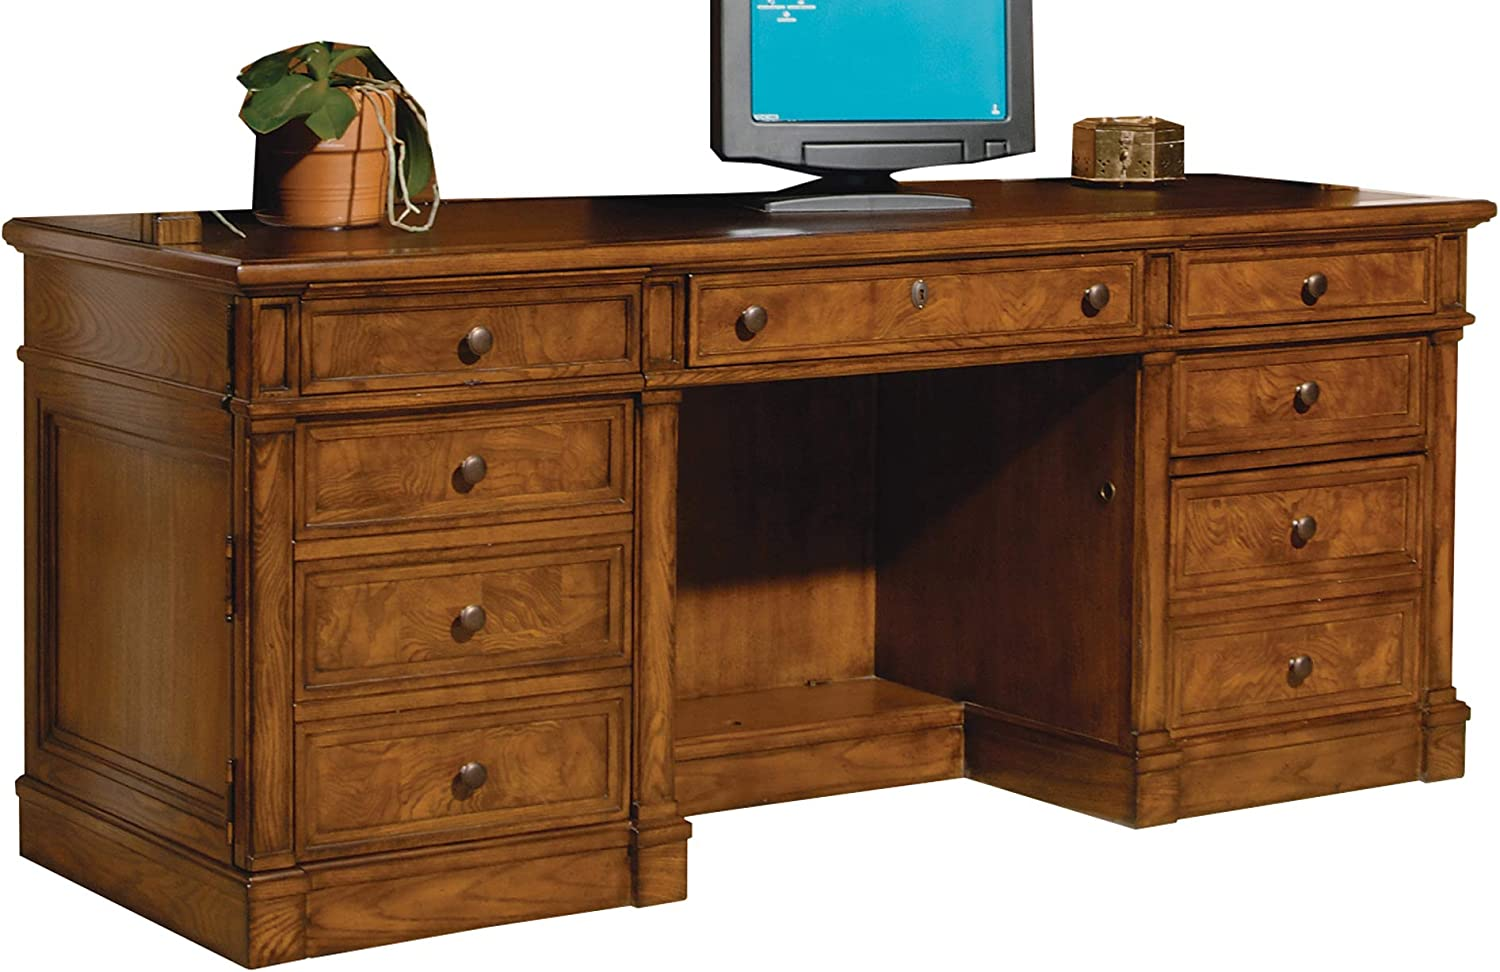 Hekman Executive CREDENZA Desk, 0.0, Urban ASH BURL